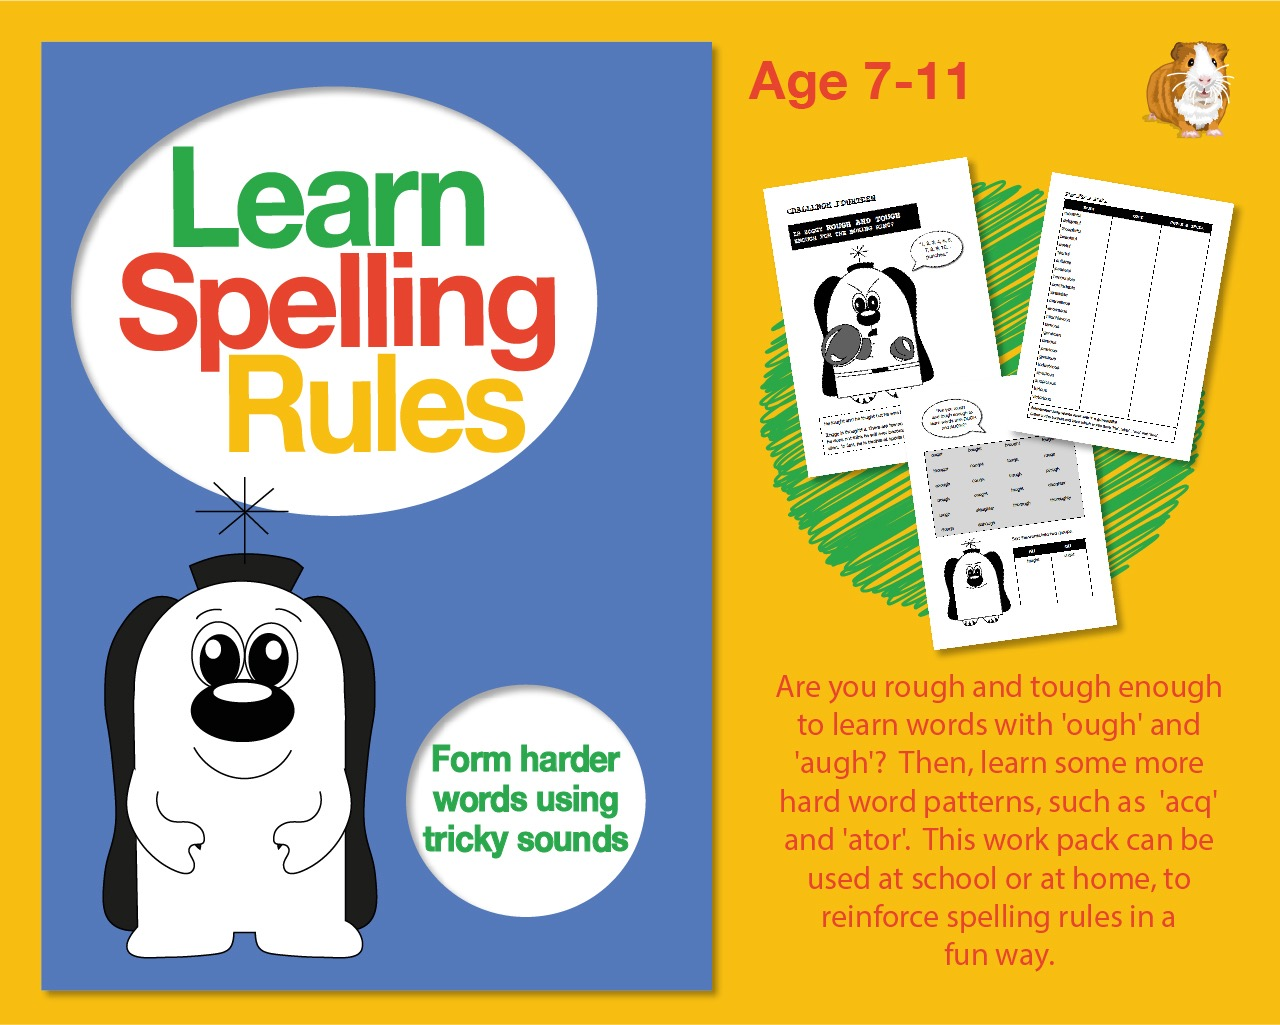 Learn Spelling Rules: Forming Harder Words Using Tricky Sounds (7-11 years)